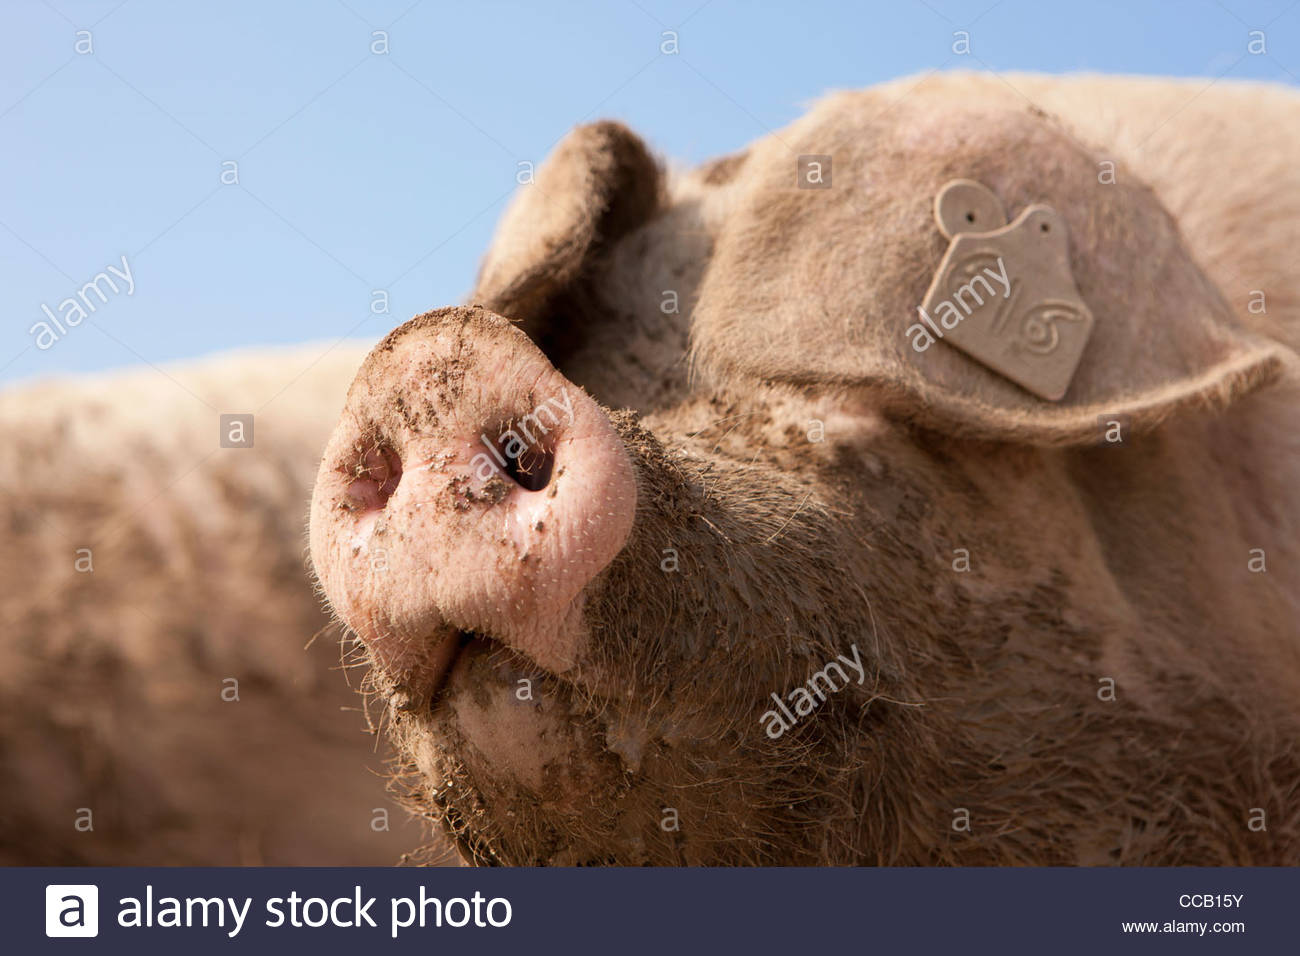 Close up of muddy pig's snout - Stock Image